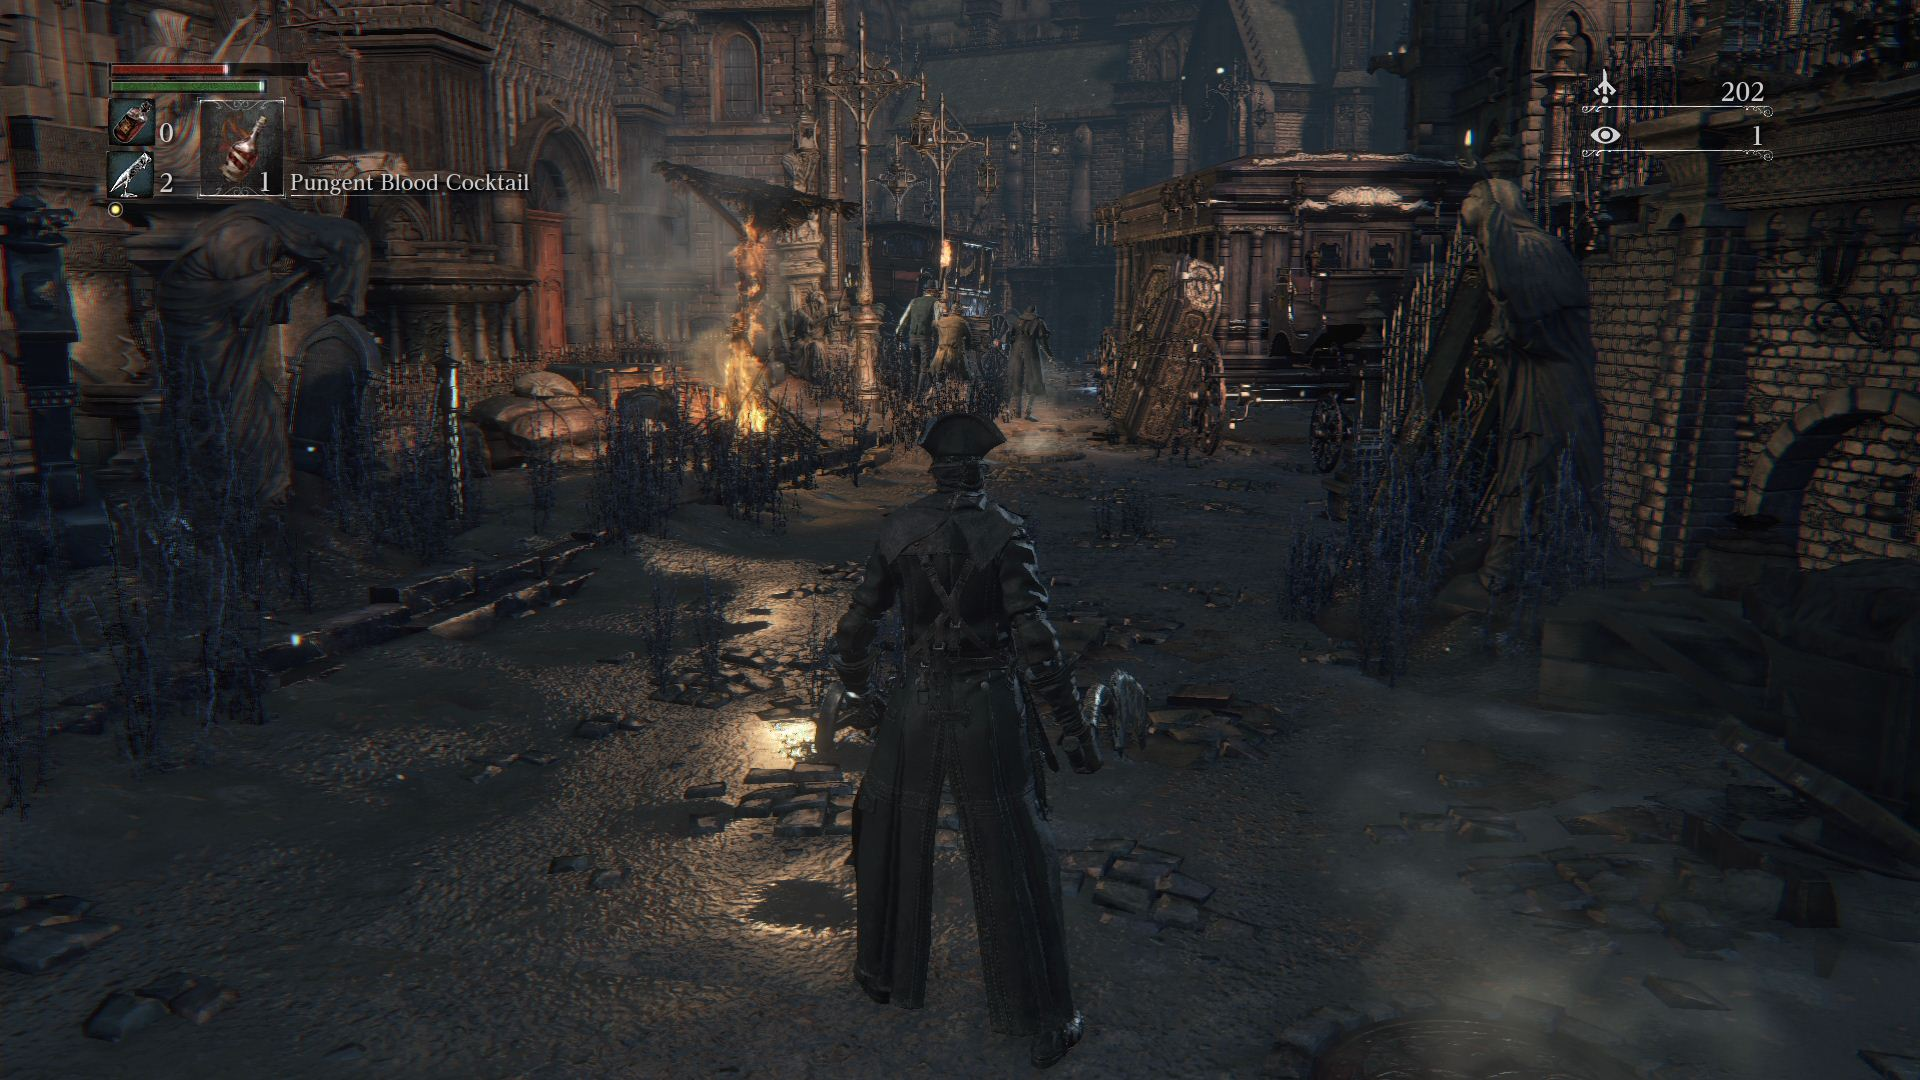 PS4 BLOODBORNE 8